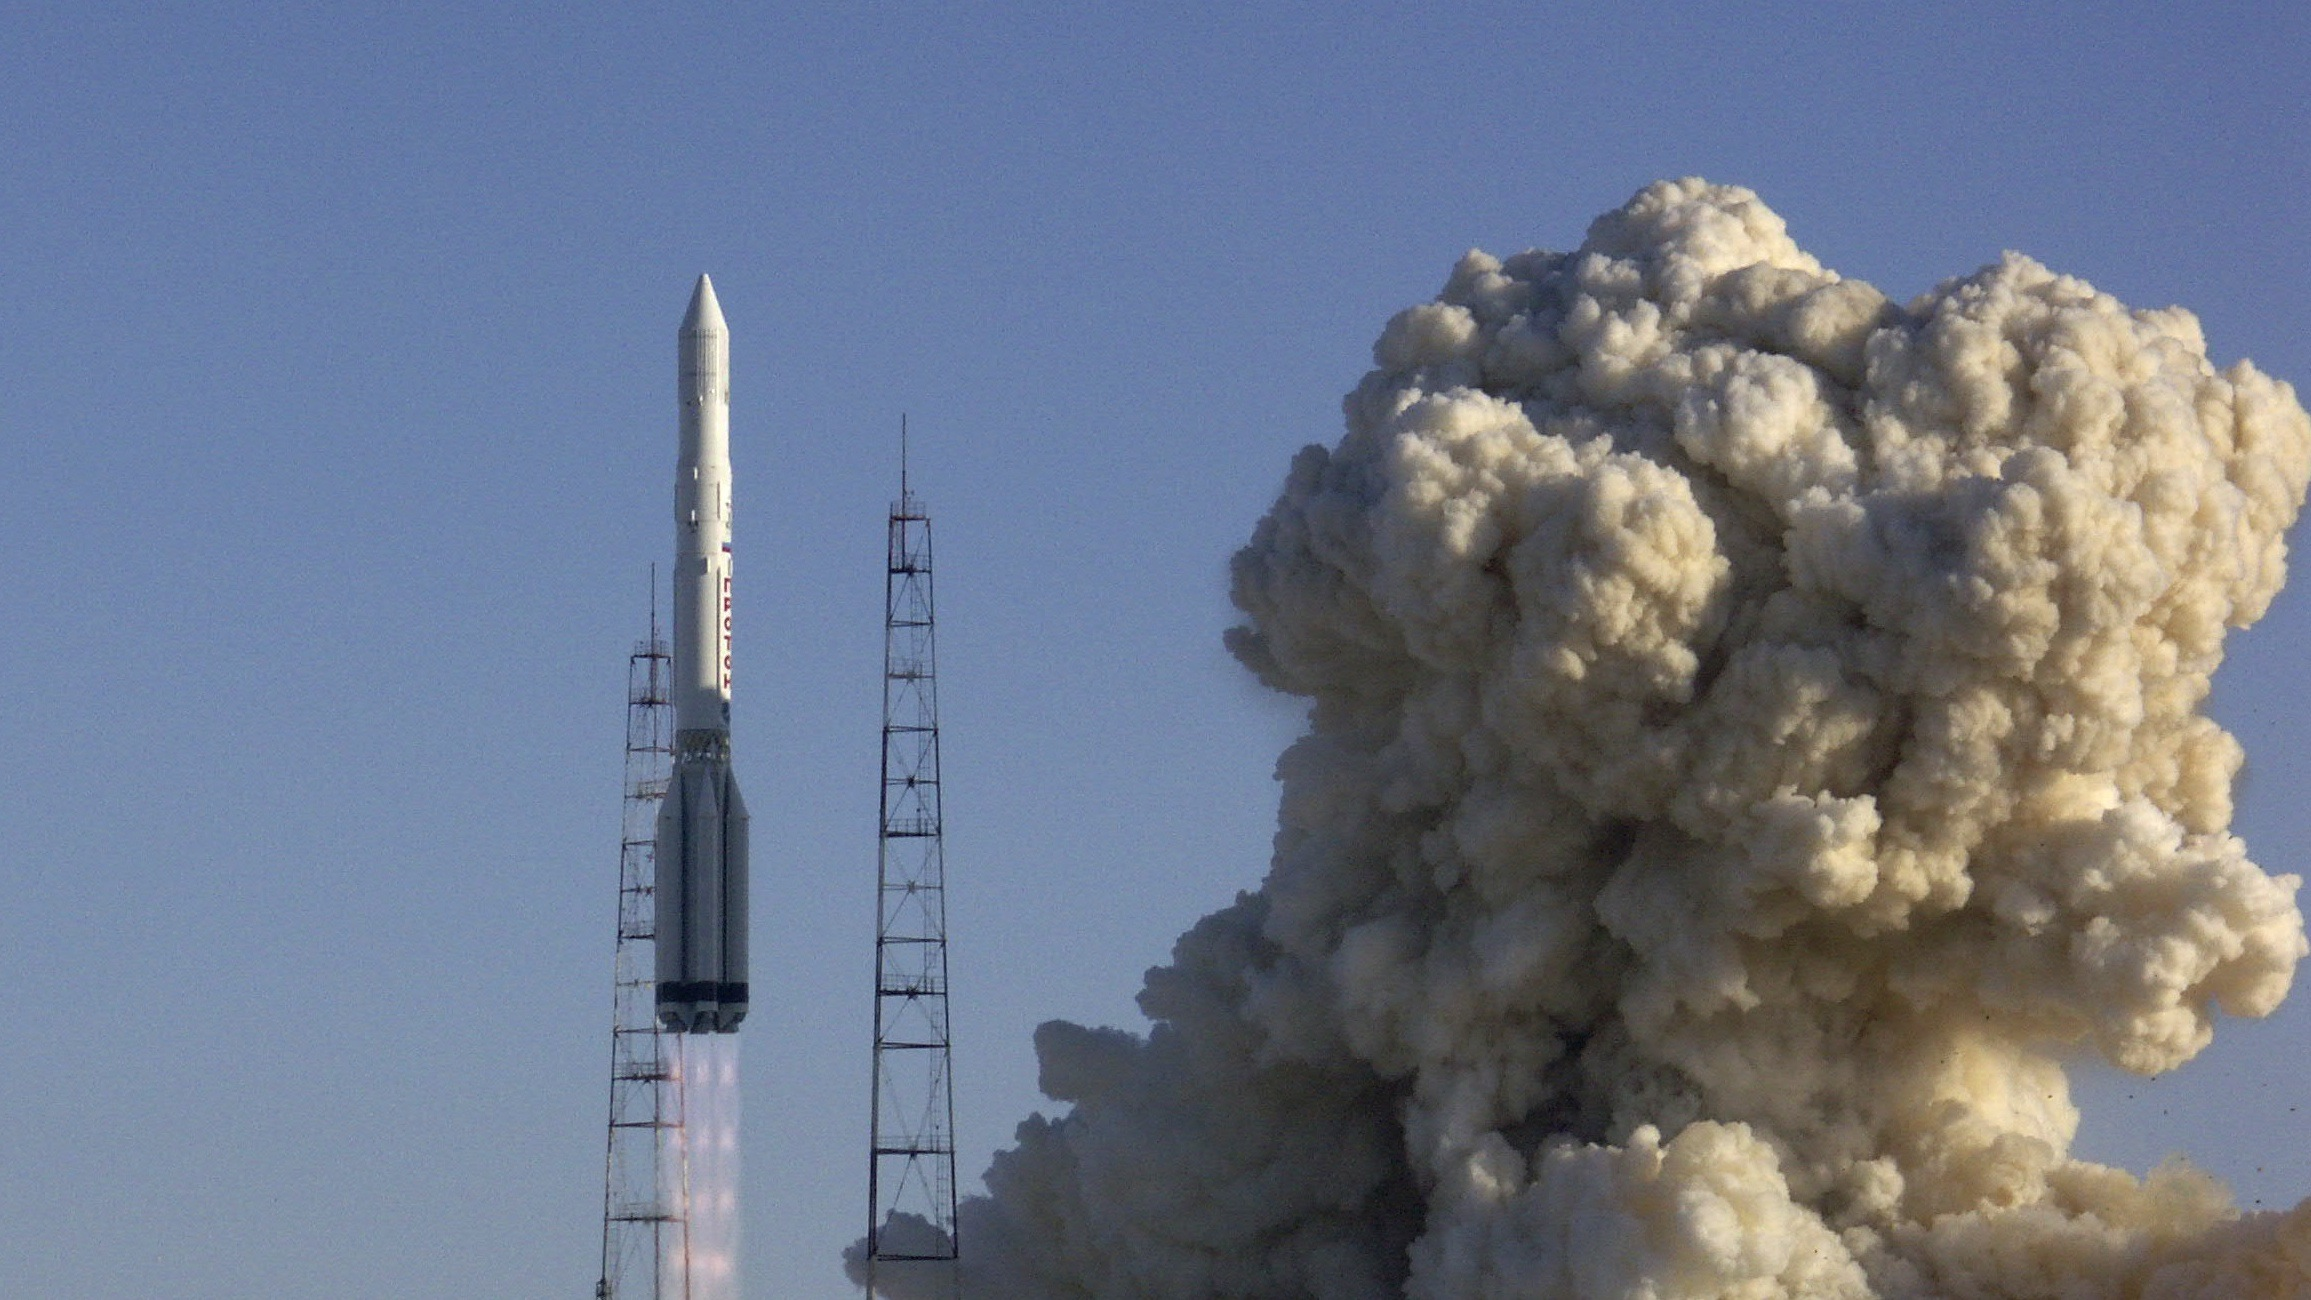 Russian Proton-K rocket carrying a Russian military satellite blasts off from the Baikonur cosmodrome in Kazakhstan, Saturday, Feb. 28, 2009. The military-purpose satellite launched from Baikonur on Saturday has been put into a planned orbit. (AP Photo)